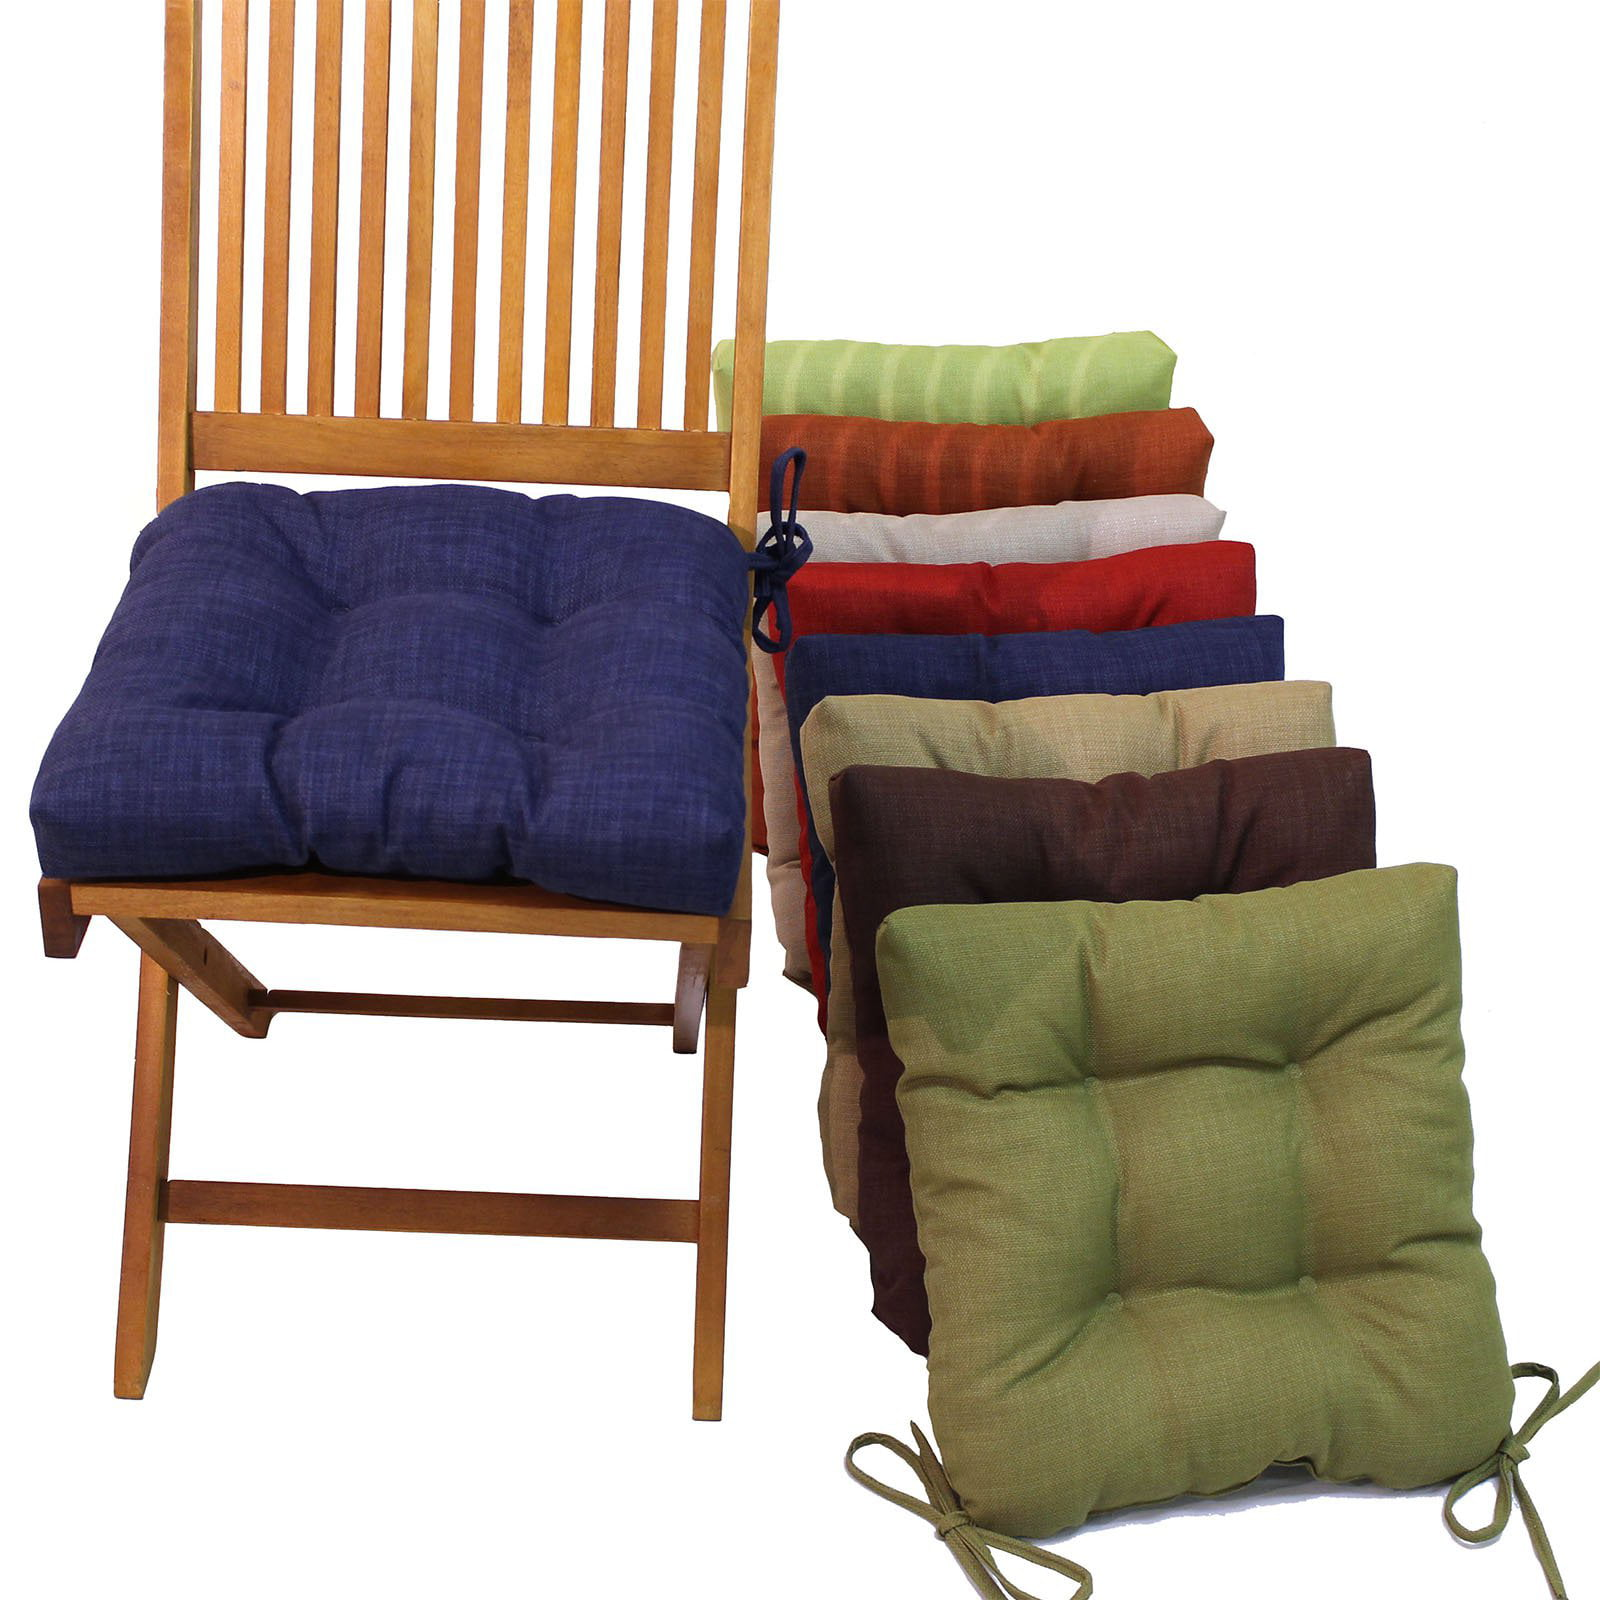 Square Outdoor Chair Cushions With Ties